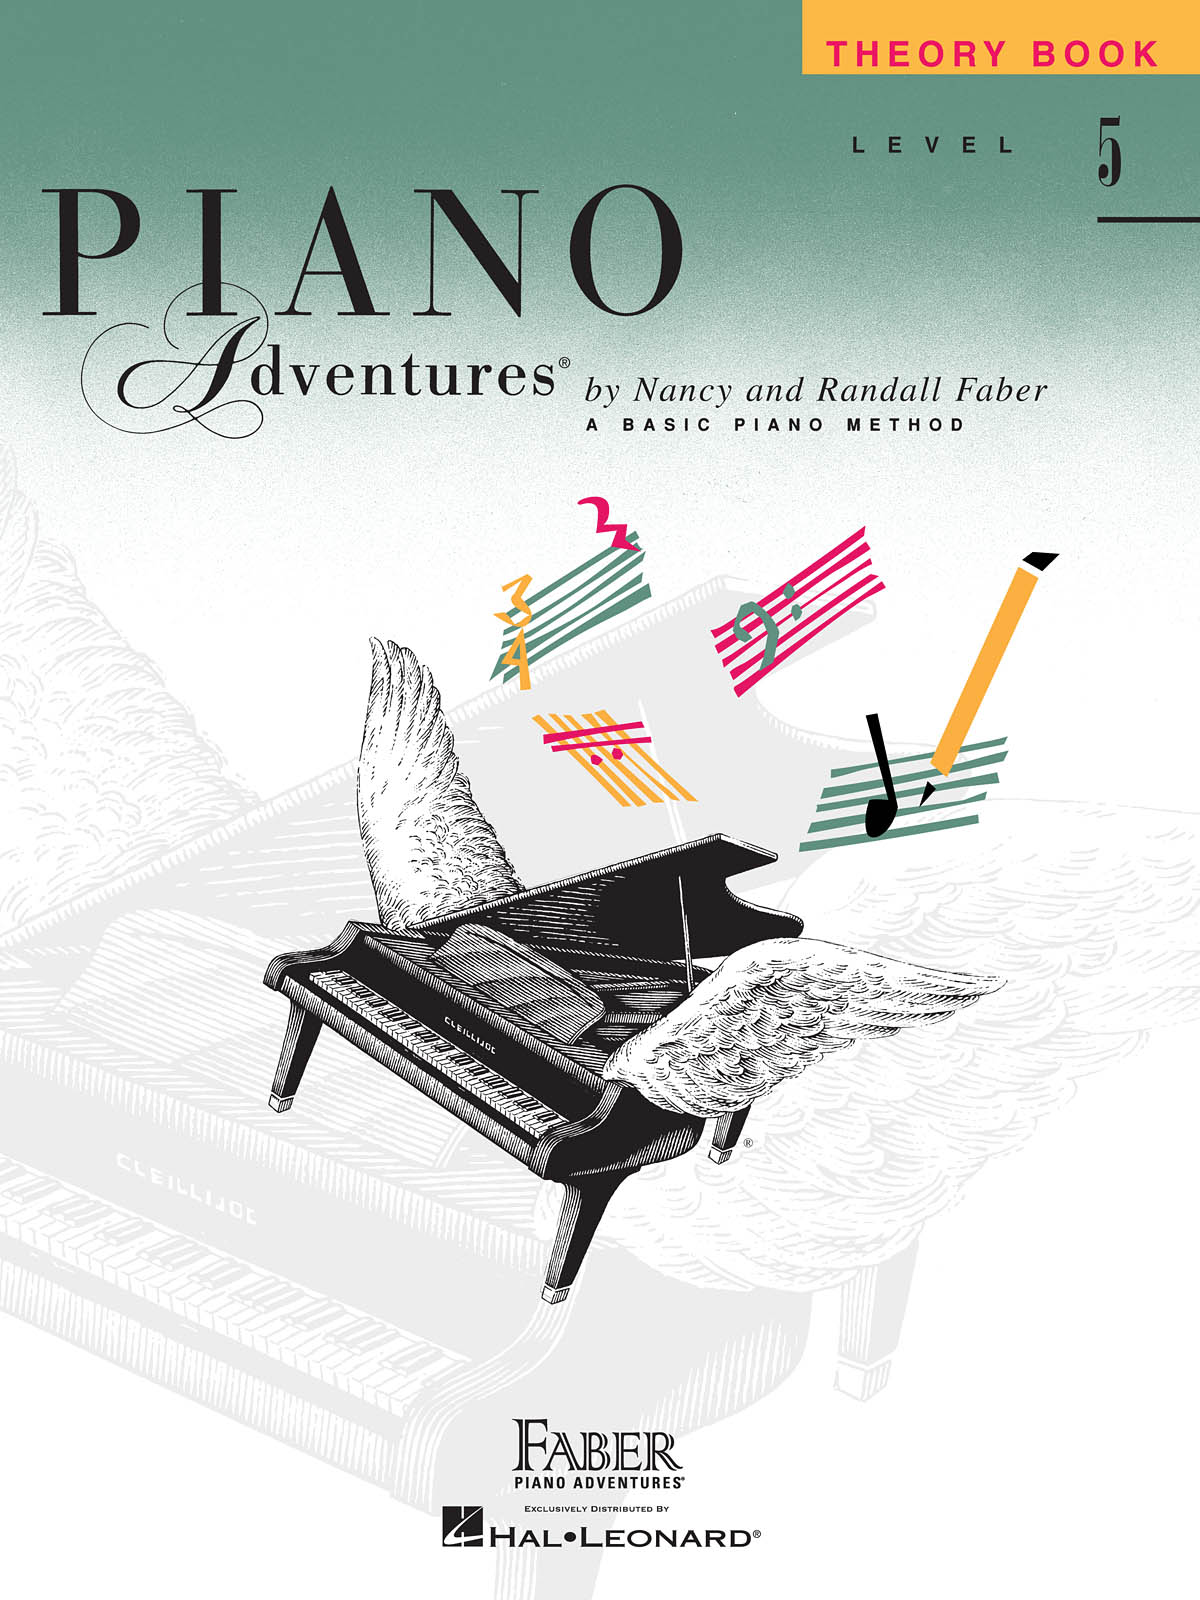 Faber Piano Adventures, Theory Book, Level 5